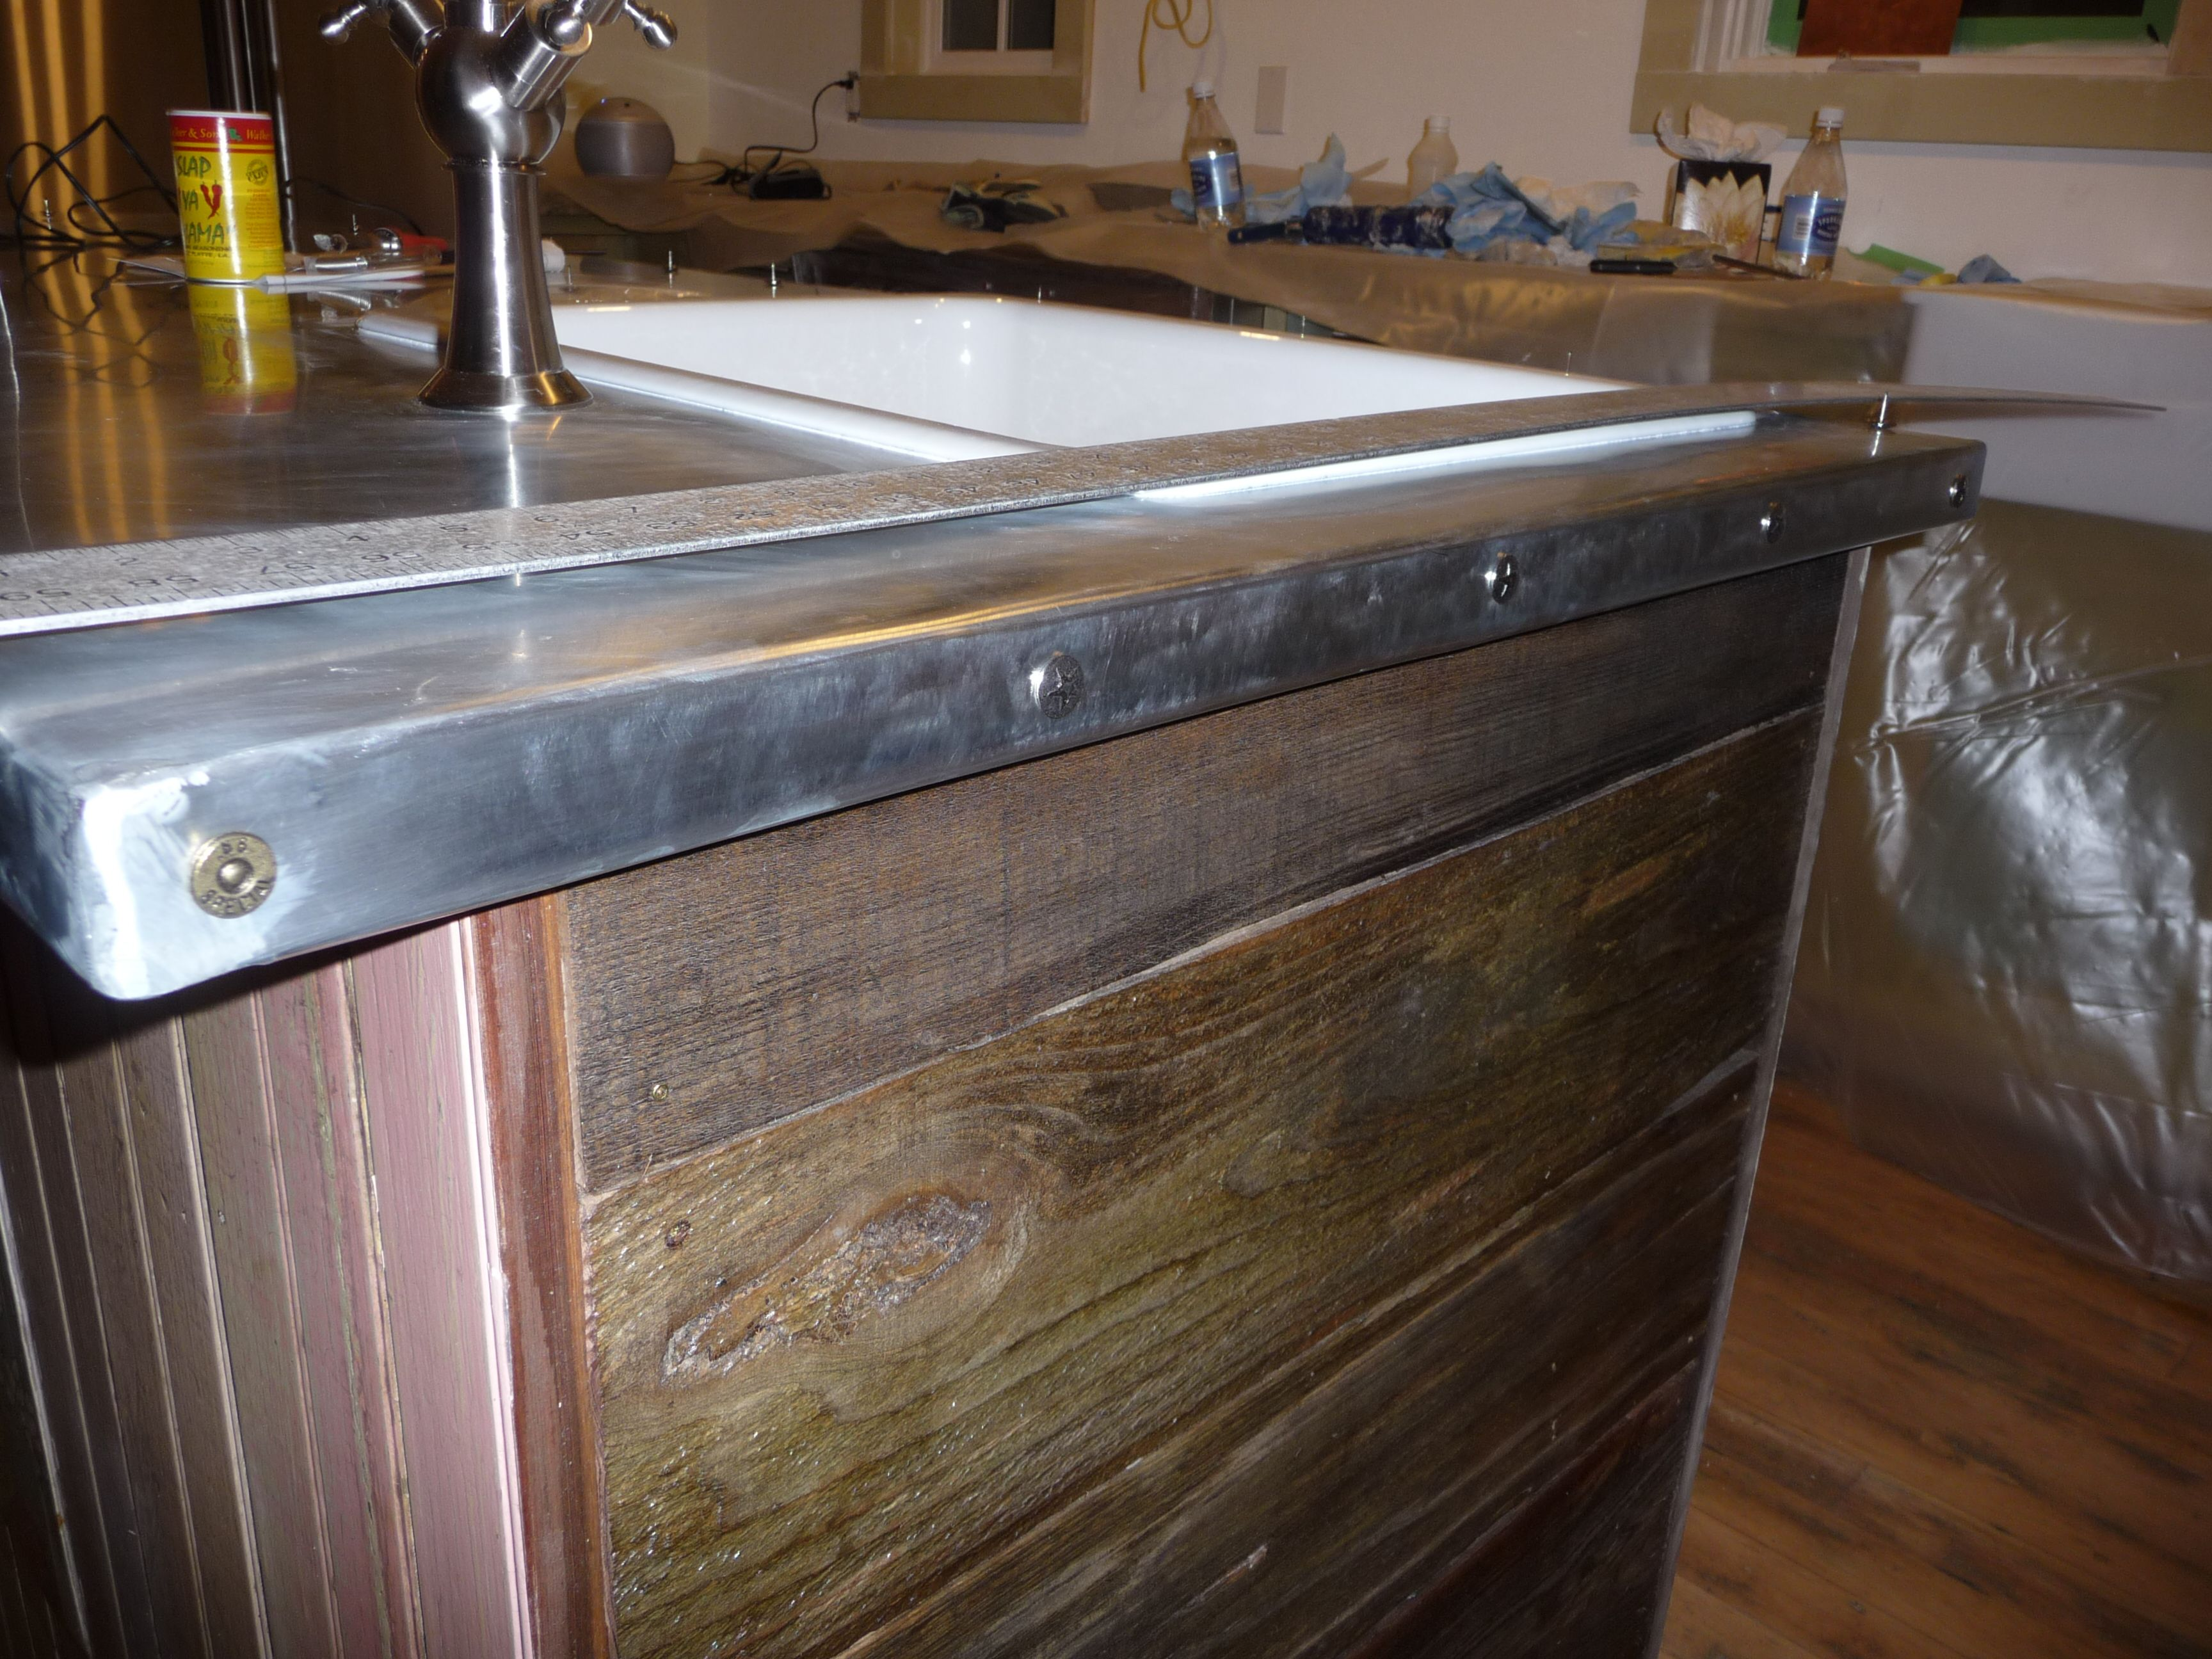 Stainless Steel Countertop Trim Zinc Countertop Diy This Also Has Your Barnwood Look On